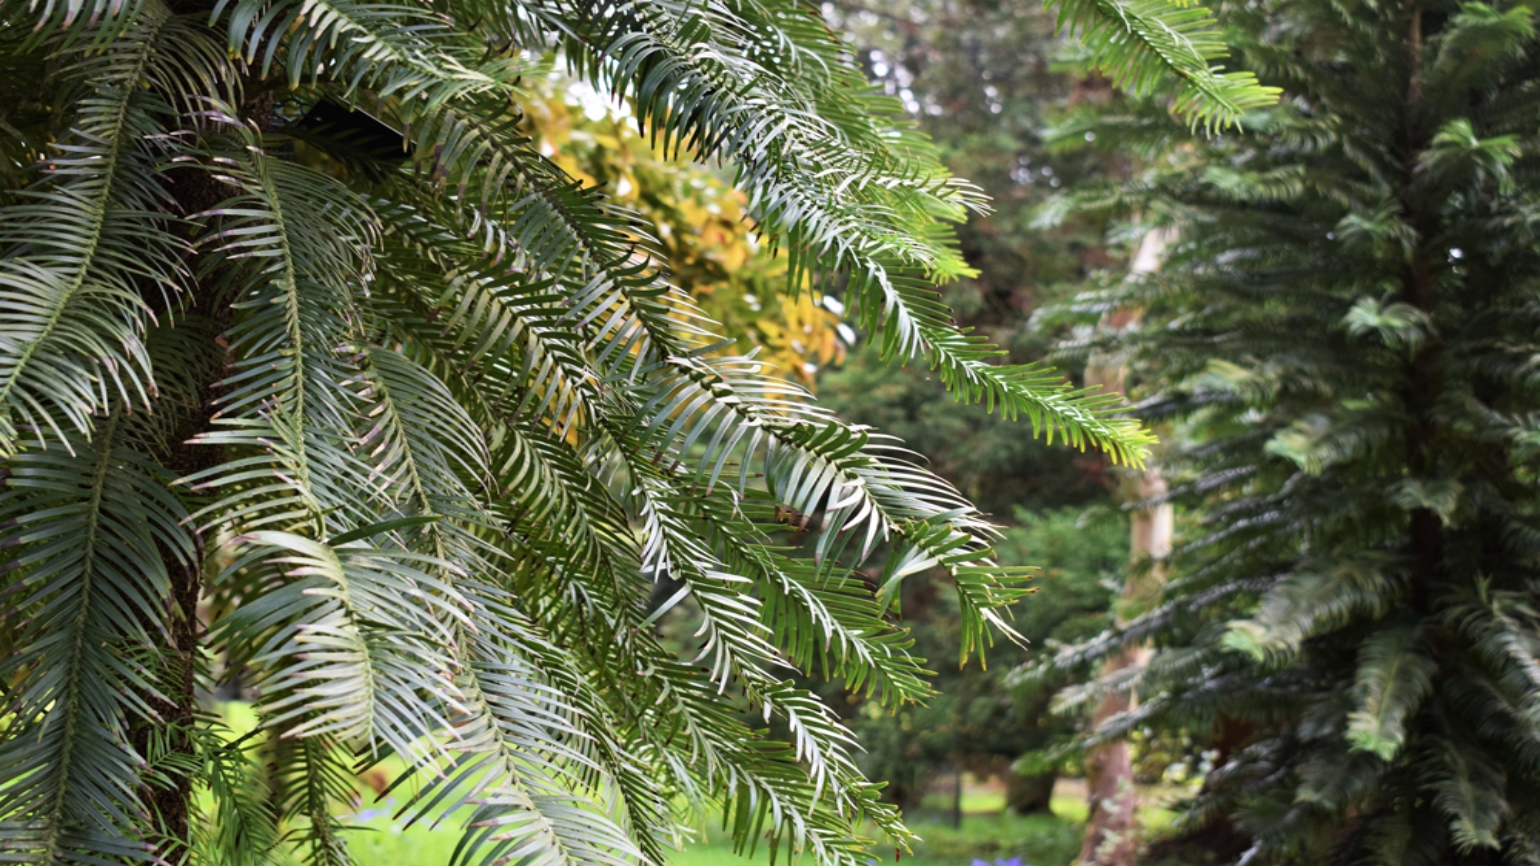 Needle-like, dark green leaves of wollemi pine at Wakehurst